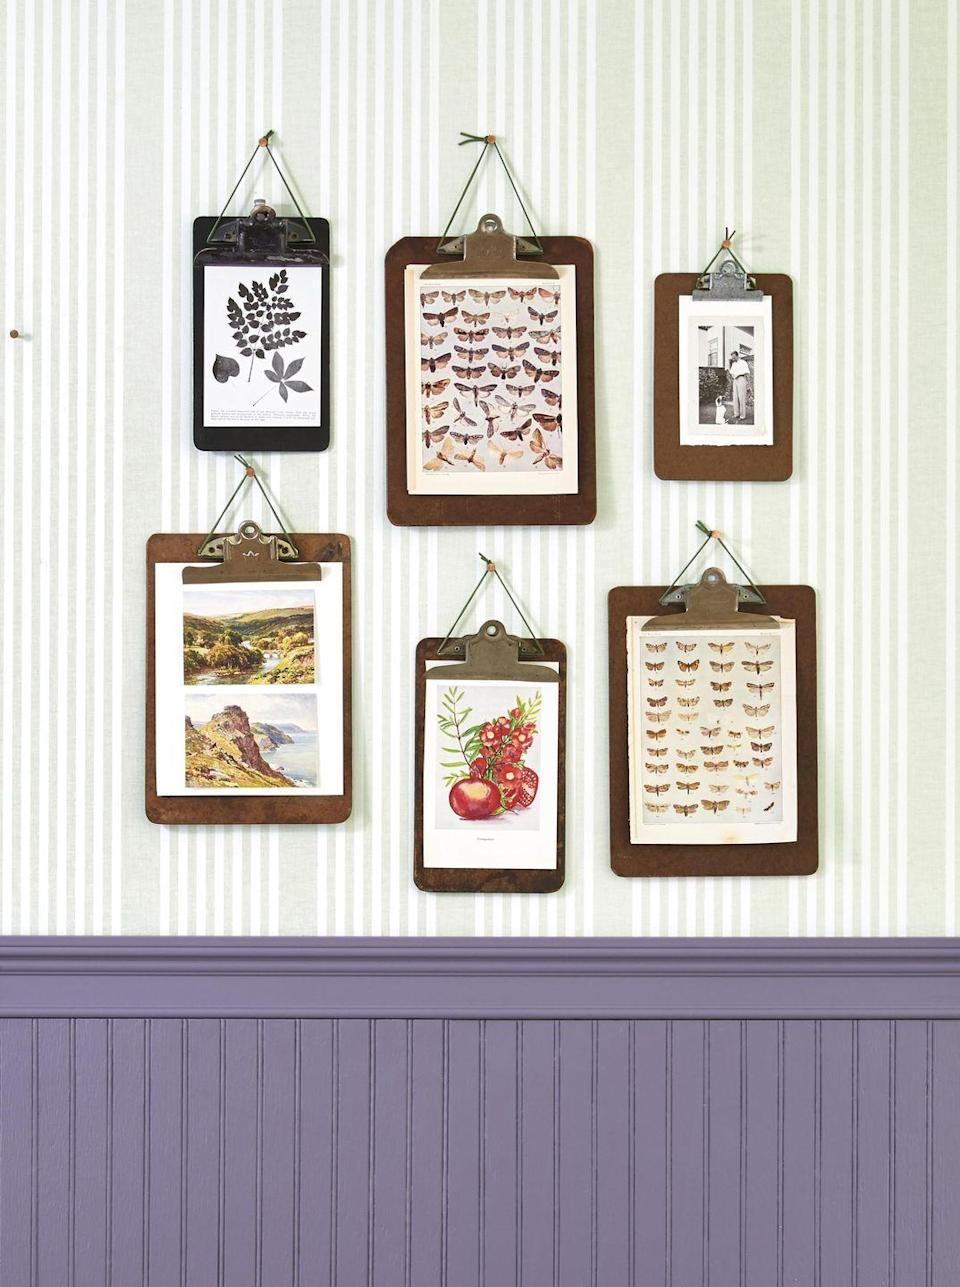 """<p>When it comes to gallery walls, frames can get expensive. And mom will love her favorite prints or family photos displayed in this super clever way. <br></p><p>To make: Simply clip prints to vintage clipboards. Thread a piece of leather jewelry cord underthe clip, knot it at the top, and hang with a pushpin.</p><p><a class=""""link rapid-noclick-resp"""" href=""""https://go.redirectingat.com?id=74968X1596630&url=https%3A%2F%2Fwww.etsy.com%2Fsearch%2Fvintage%3Fq%3Dclip%2Bboards%26bucket_id%3DiU16hZ2q7-mmyefOp9rDC4m8bukm%26user_id%3D57520233%26eligibility_map%255Bcurrency%255D%3DUSD%26eligibility_map%255Bdevice%255D%3D1%252C0%252C0%252C0%252C0%252C0%252C0%252C0%252C0%252C0%252C0%252C0%26eligibility_map%255Blanguage%255D%3Den-US%26eligibility_map%255Bregion%255D%3DUS%26eligibility_map%255Buser%255D%3D57520233%26vintage_rewrite%3Dvintage%2Bclip%2Bboards%26original_query%3D2&sref=https%3A%2F%2Fwww.countryliving.com%2Fdiy-crafts%2Fg2357%2Fgifts-for-grandma%2F"""" rel=""""nofollow noopener"""" target=""""_blank"""" data-ylk=""""slk:SHOP CLIP BOARDS"""">SHOP CLIP BOARDS</a></p>"""